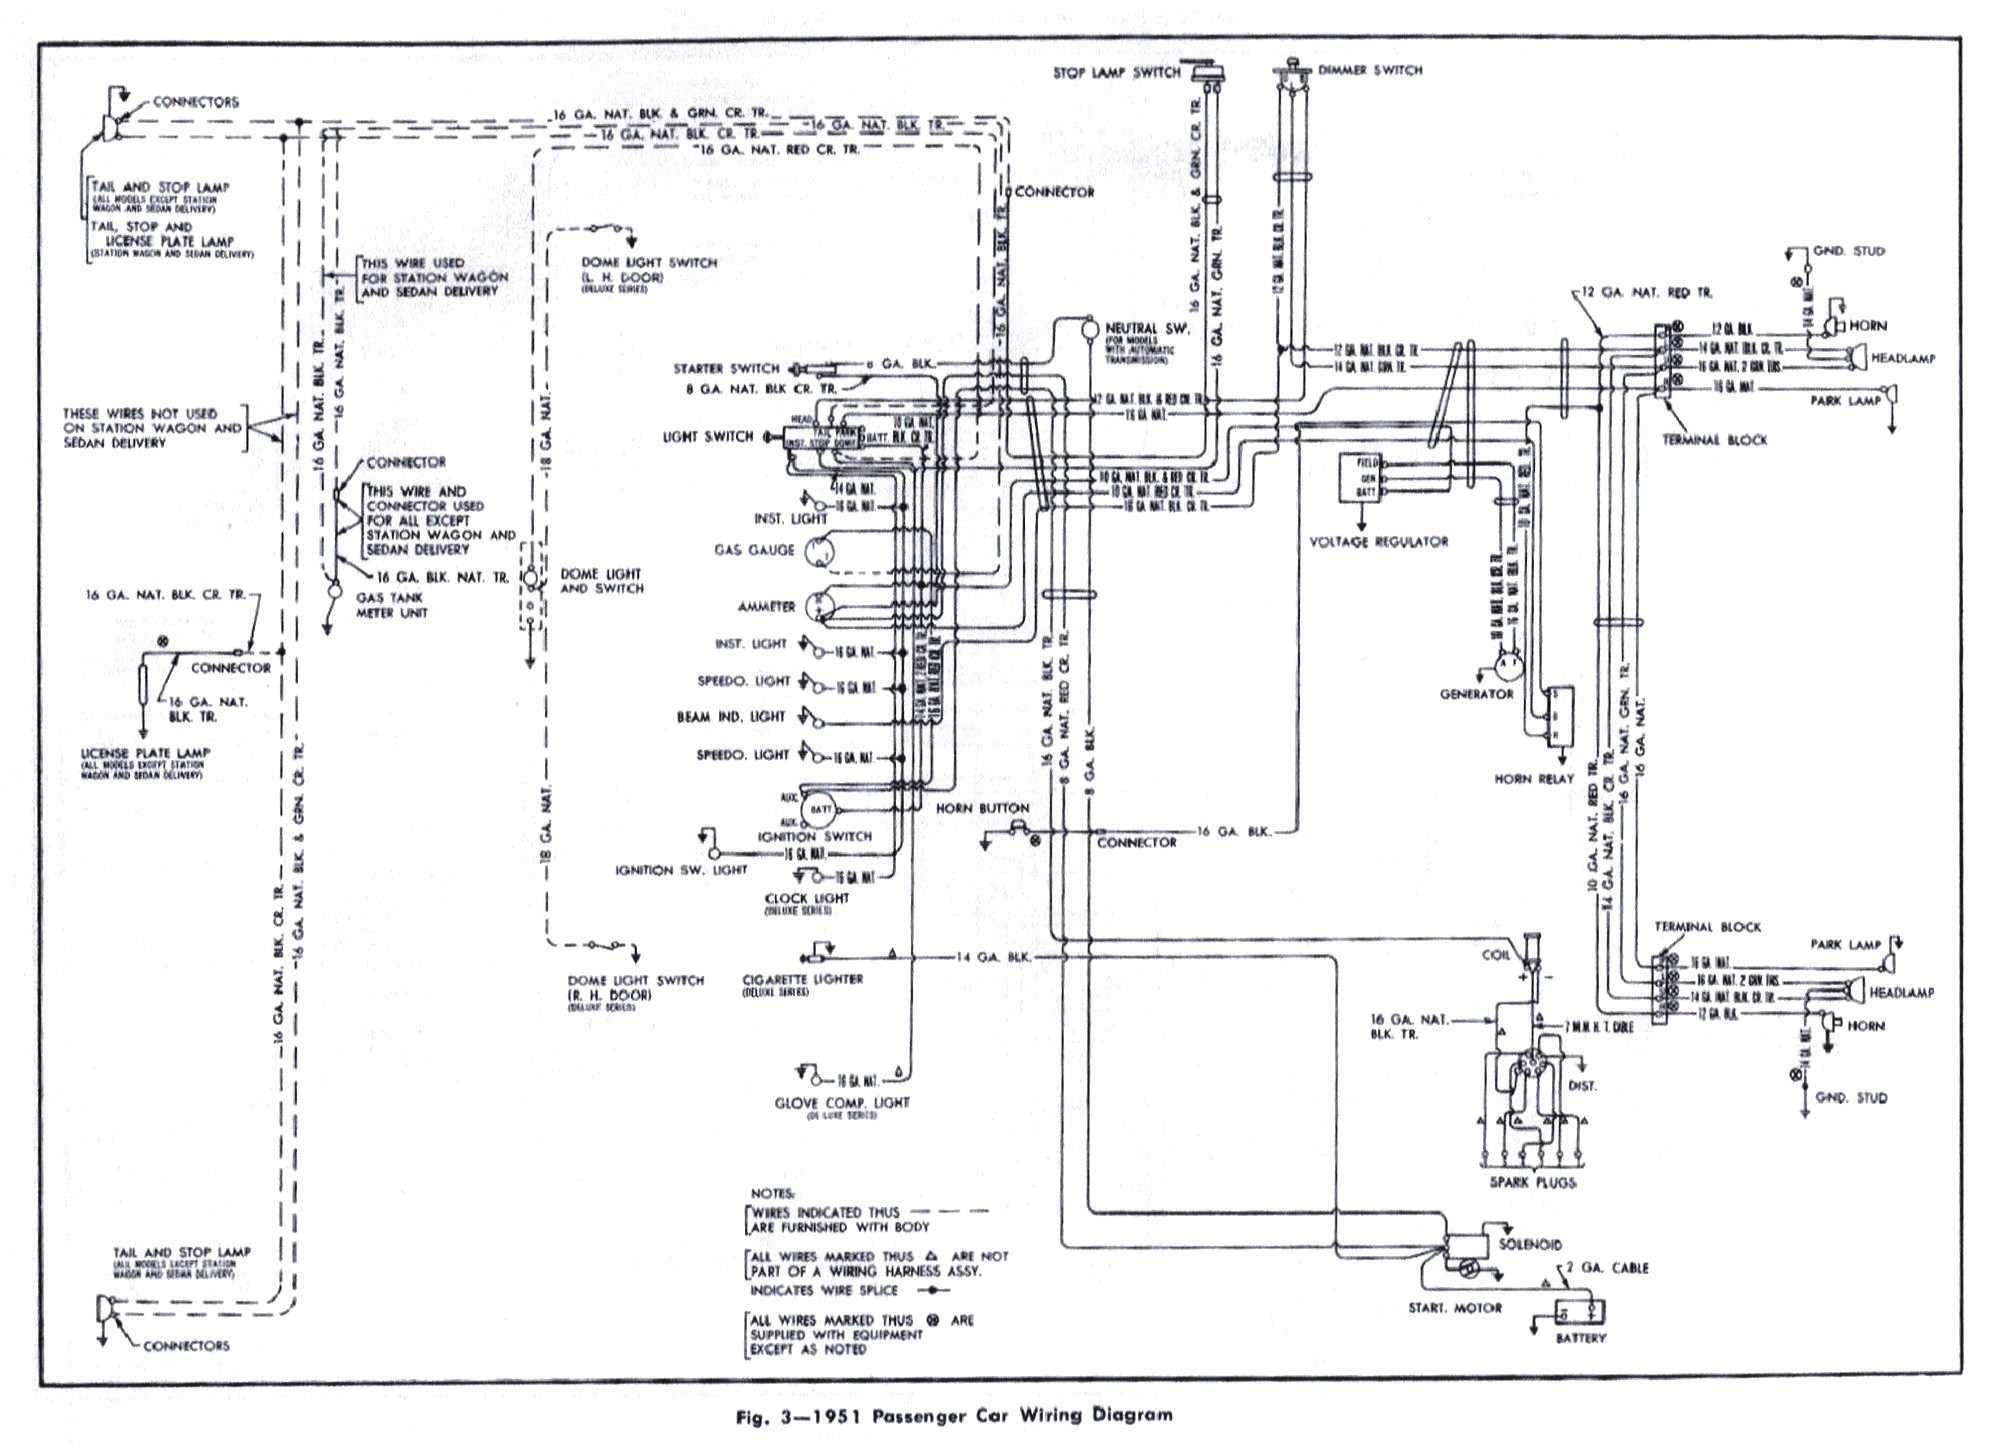 1951 oldsmobile wiring diagram free picture schematic